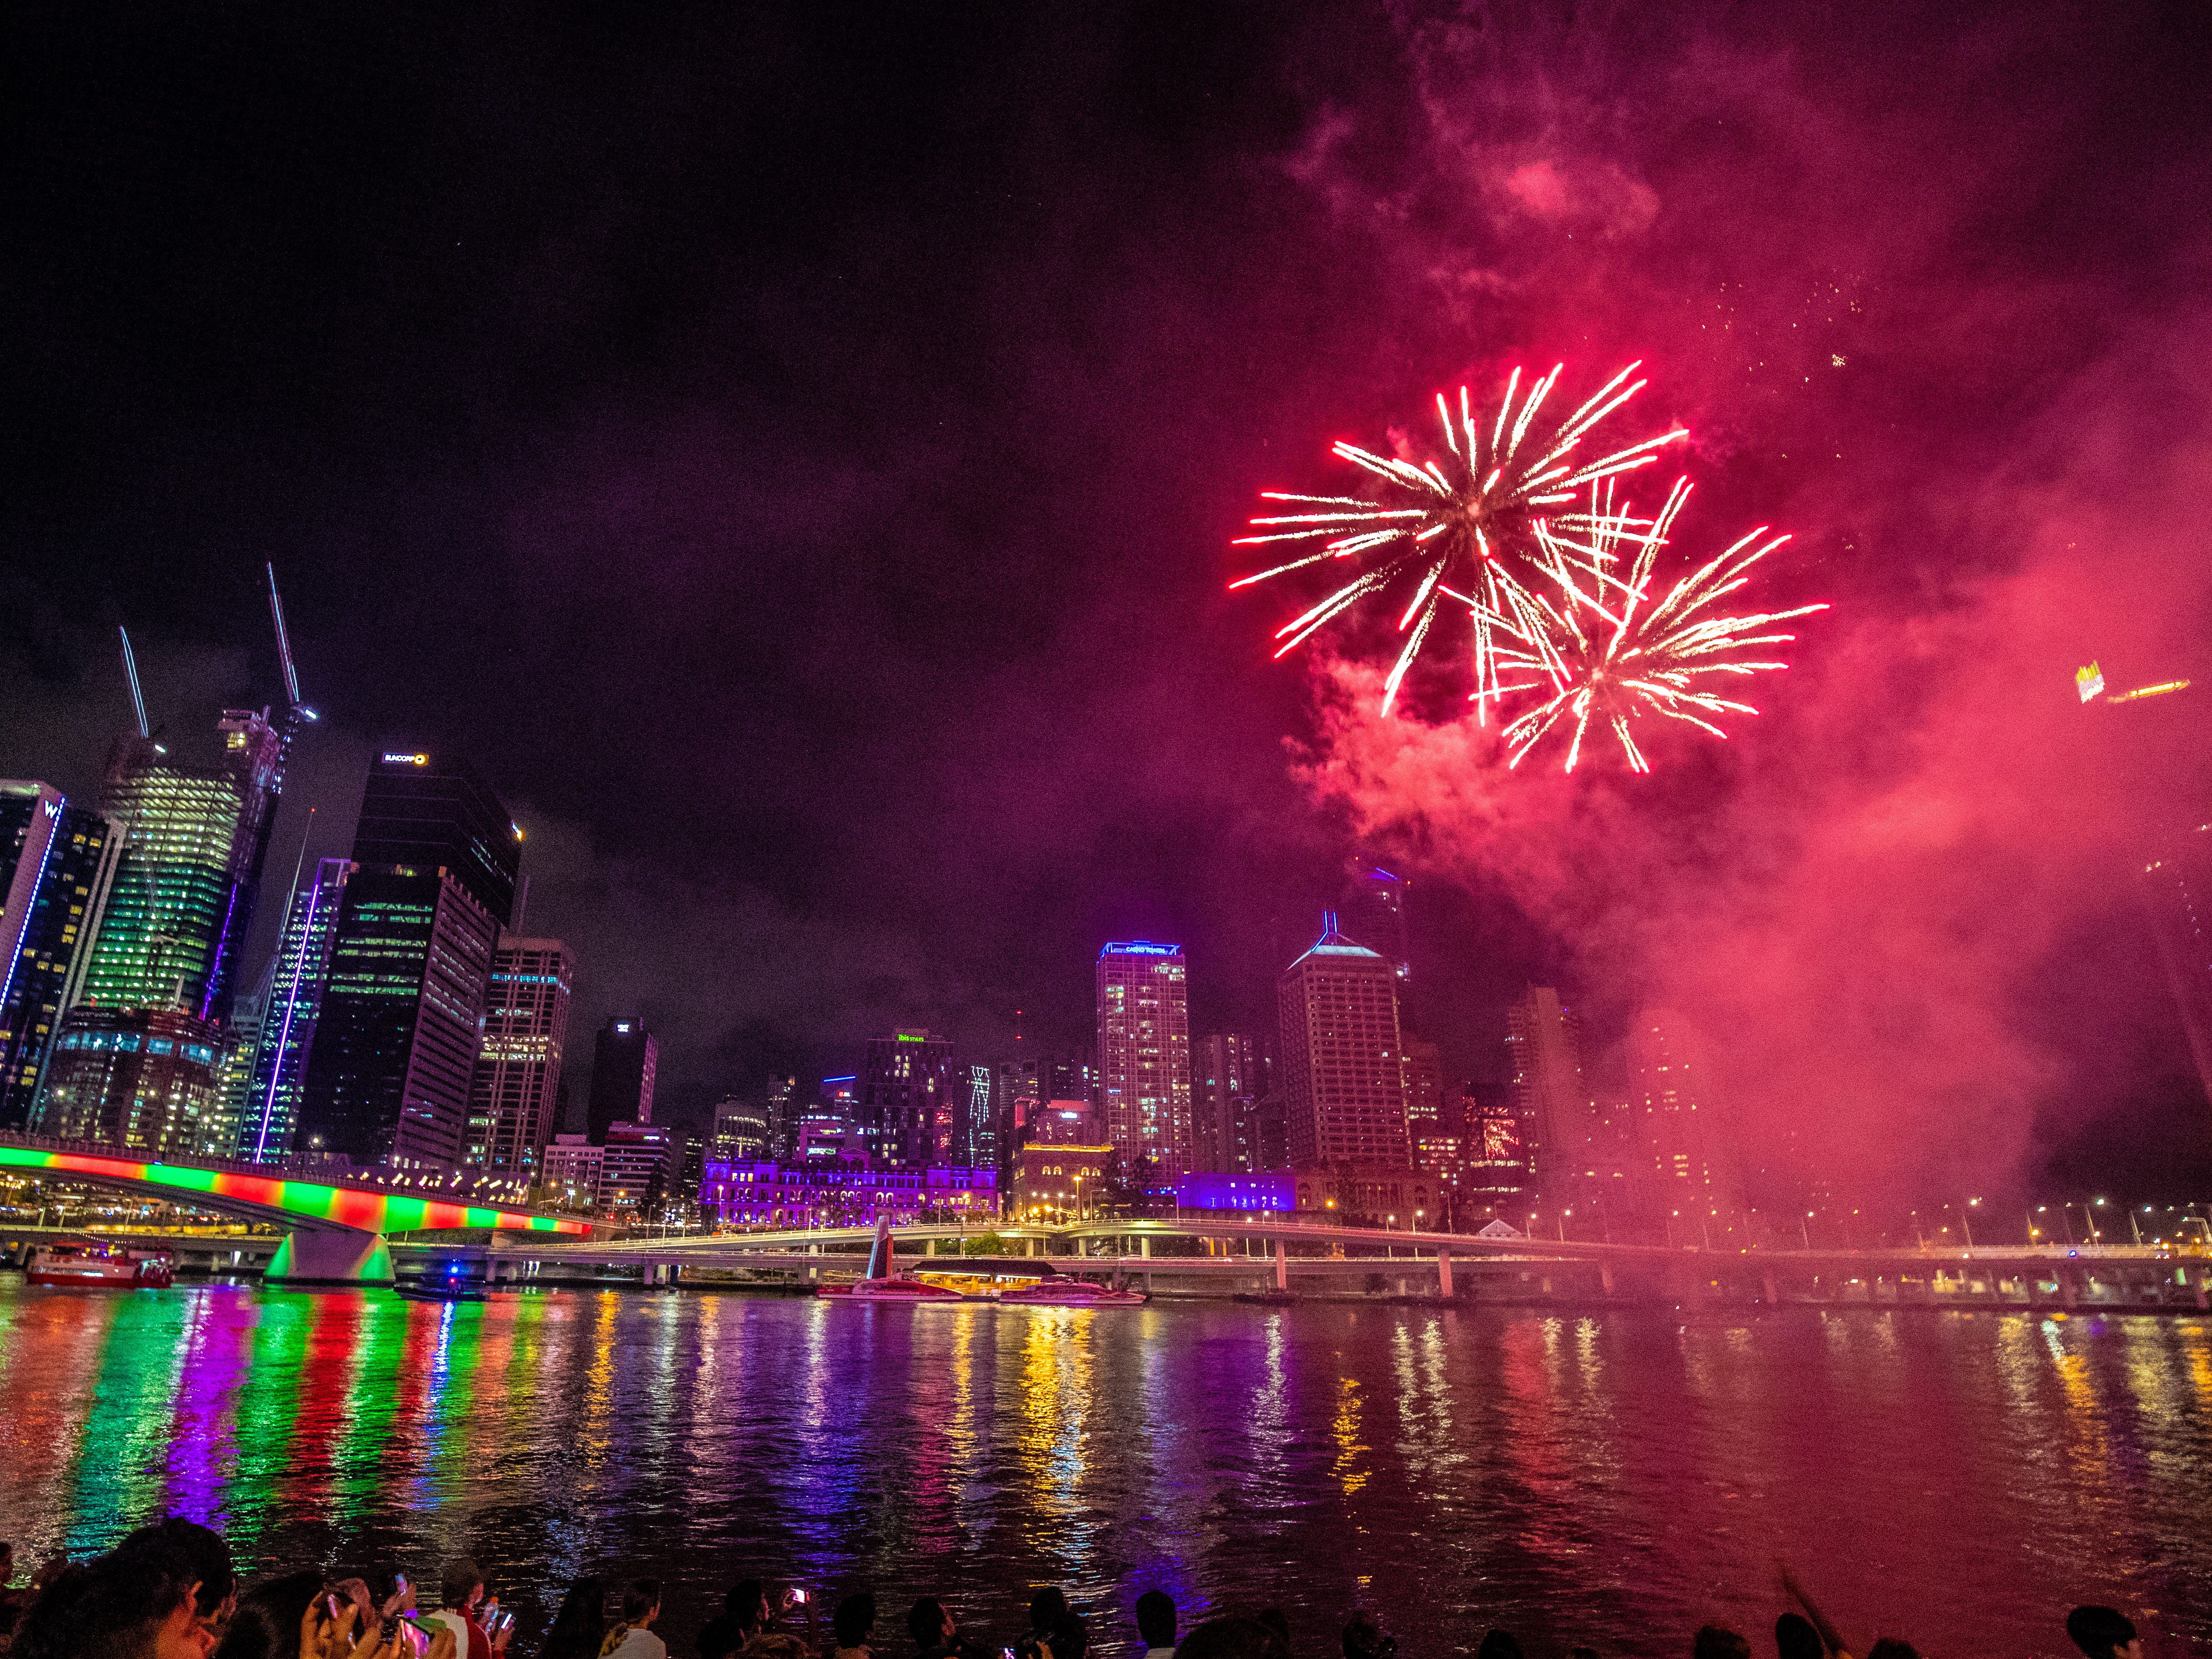 People watch early fireworks ahead of New Year's Eve over the Brisbane River at Southbank in Brisbane, Queensland, Australia.